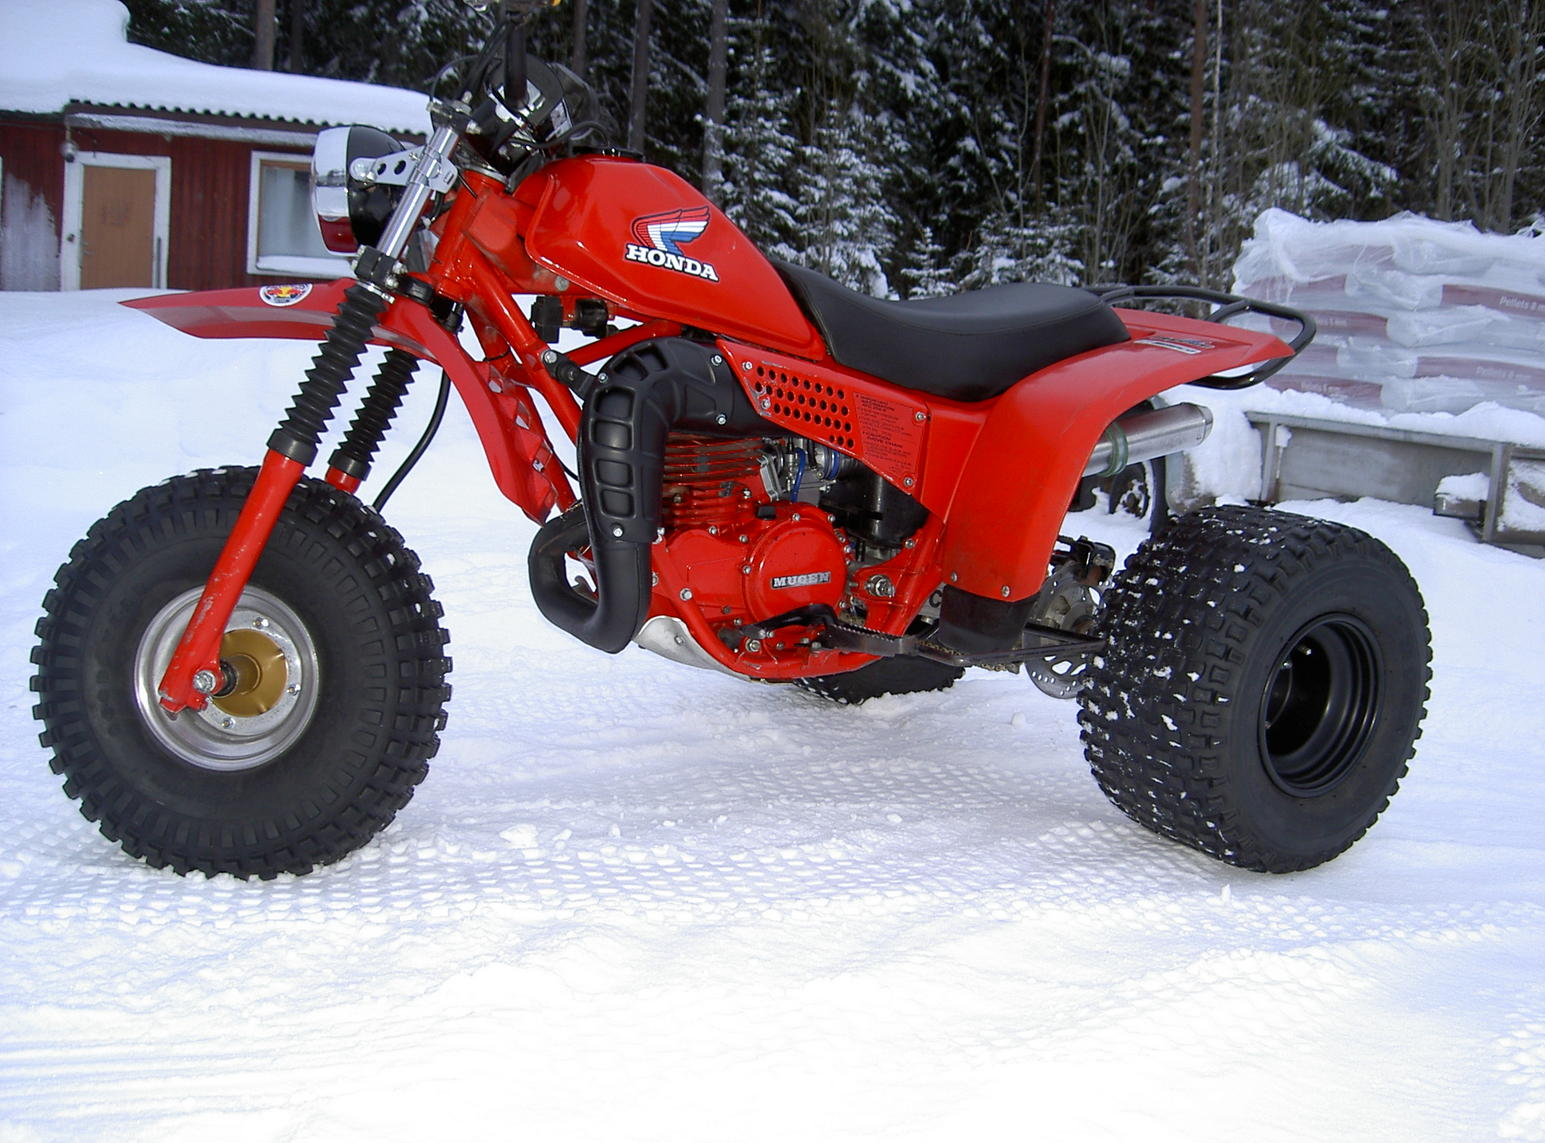 ATC 250R Three Wheeler http://picsbox.biz/key/250r%20atc%20parts